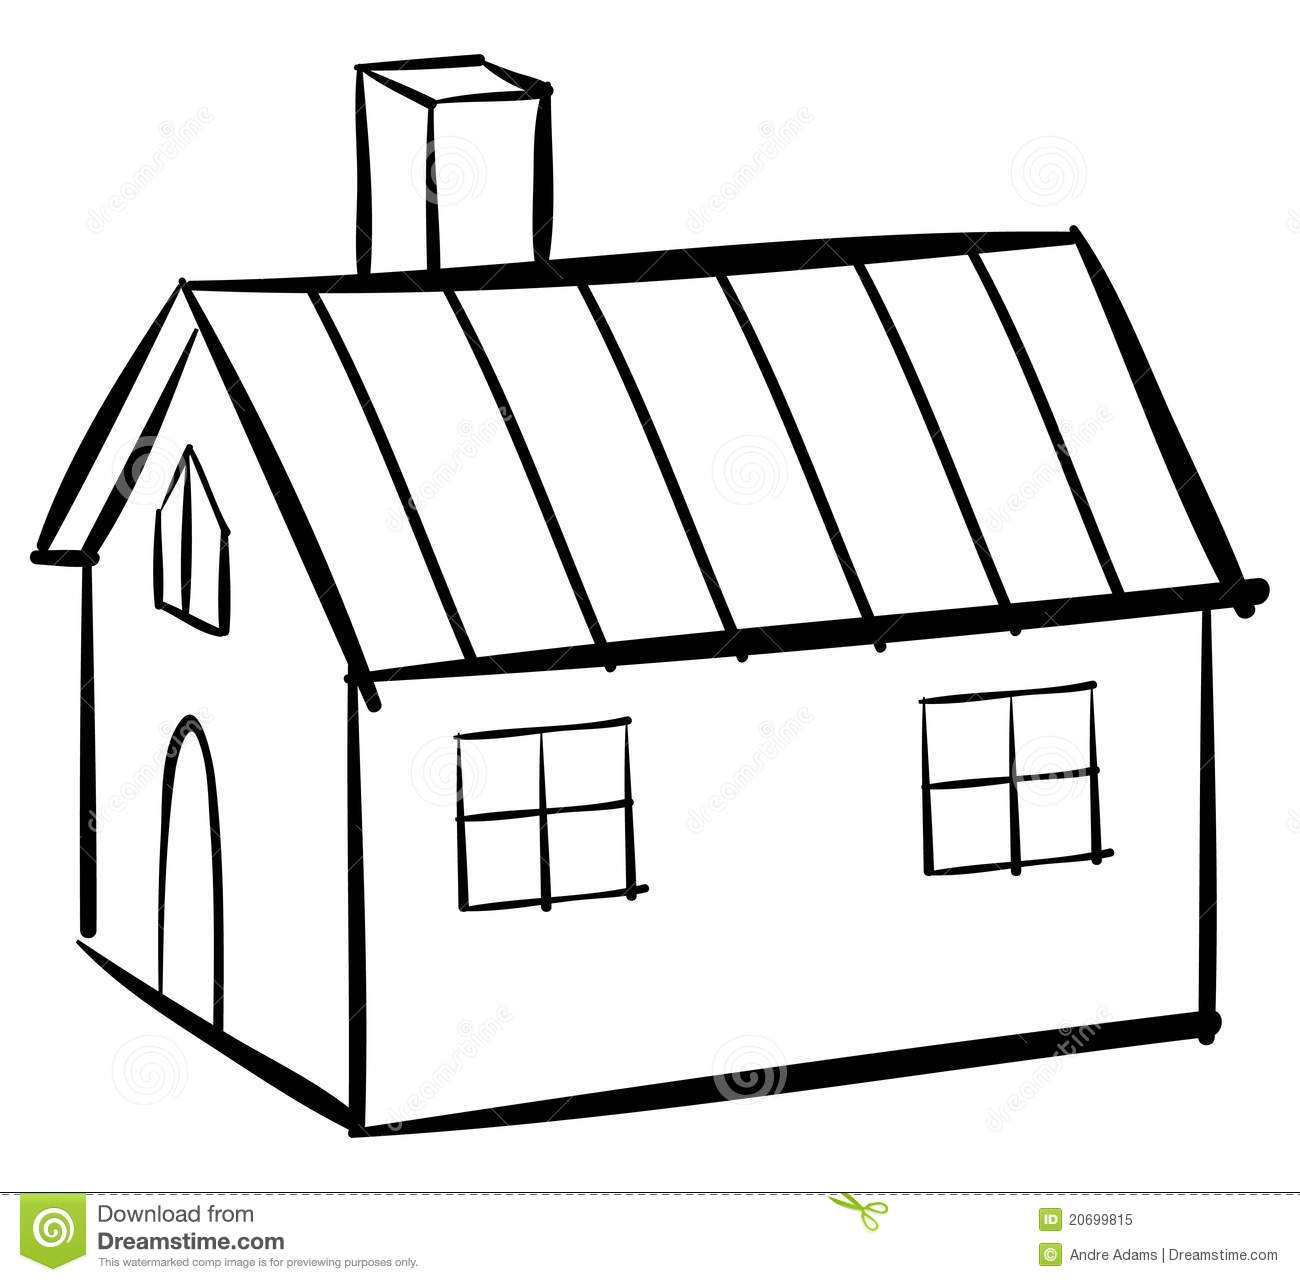 House outline stock vector. Illustration of home, book